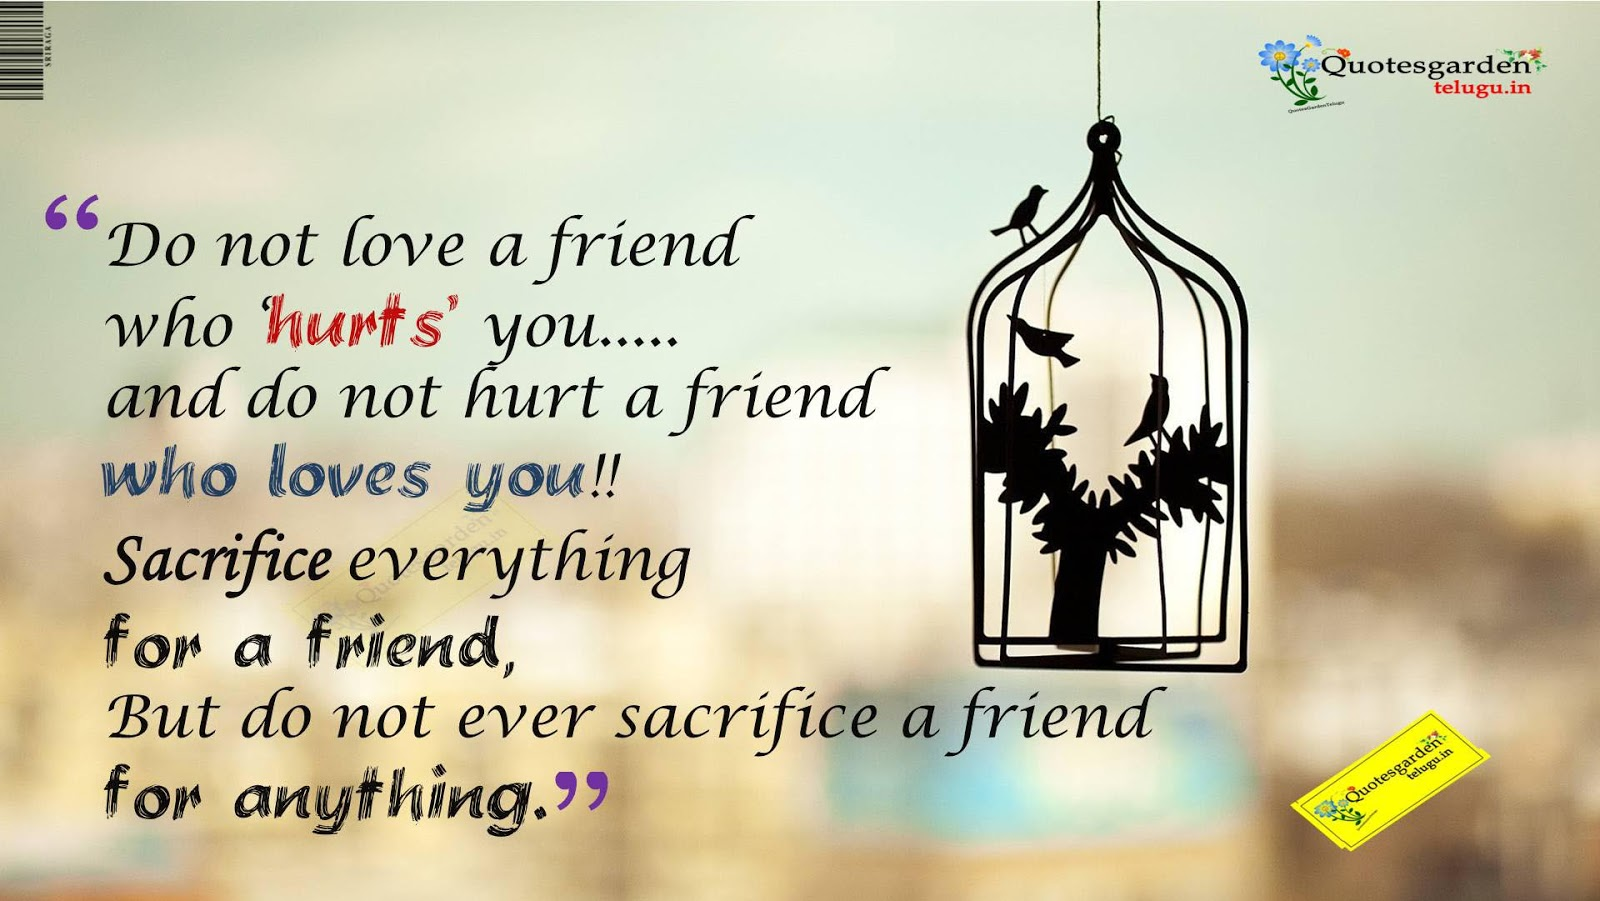 Anime Quotes About Friendship Sad Anime Quotes About Friendship Saddest Anime Quotes Quotesgram.